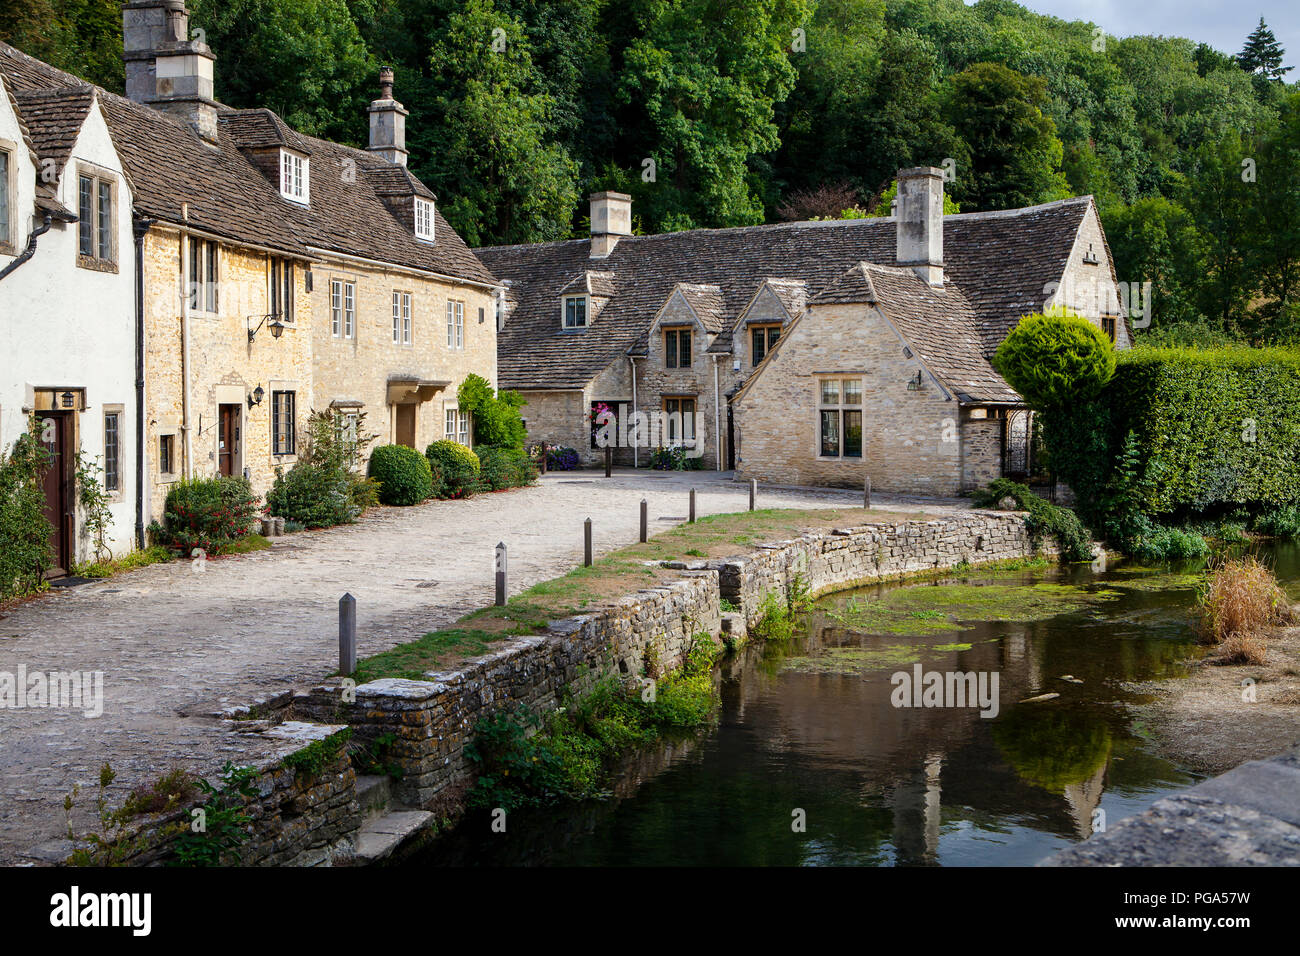 Castle Combe, UK - 9th August 2018: Castle Combe is a quintessentially English village often named as the 'prettiest village in England.' Stock Photo